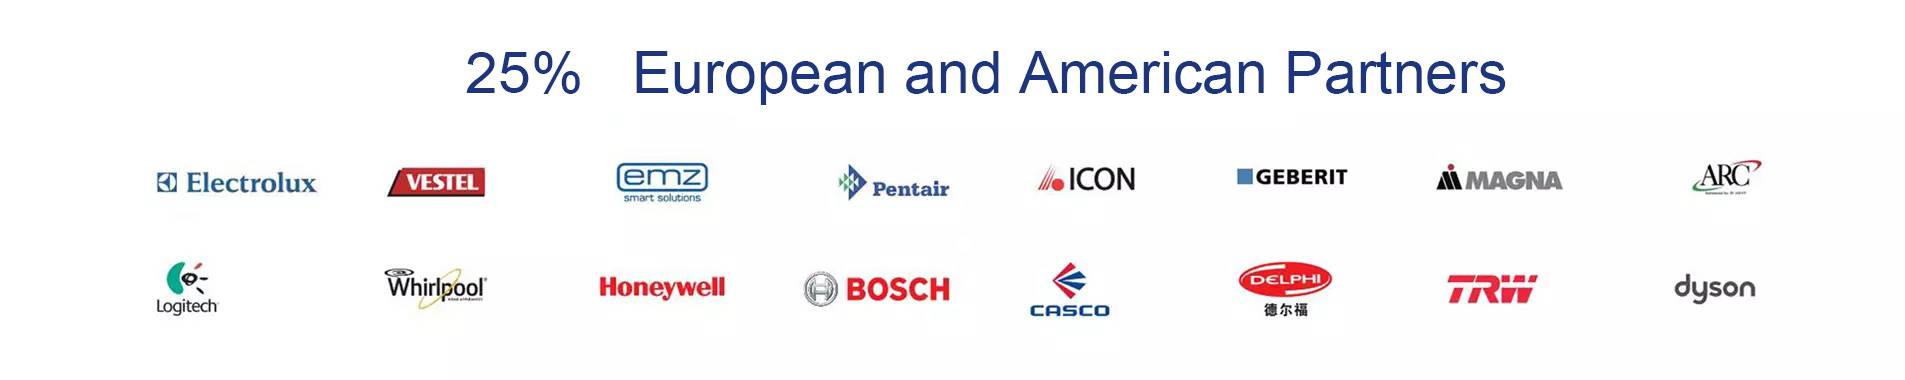 European and American Partners-1